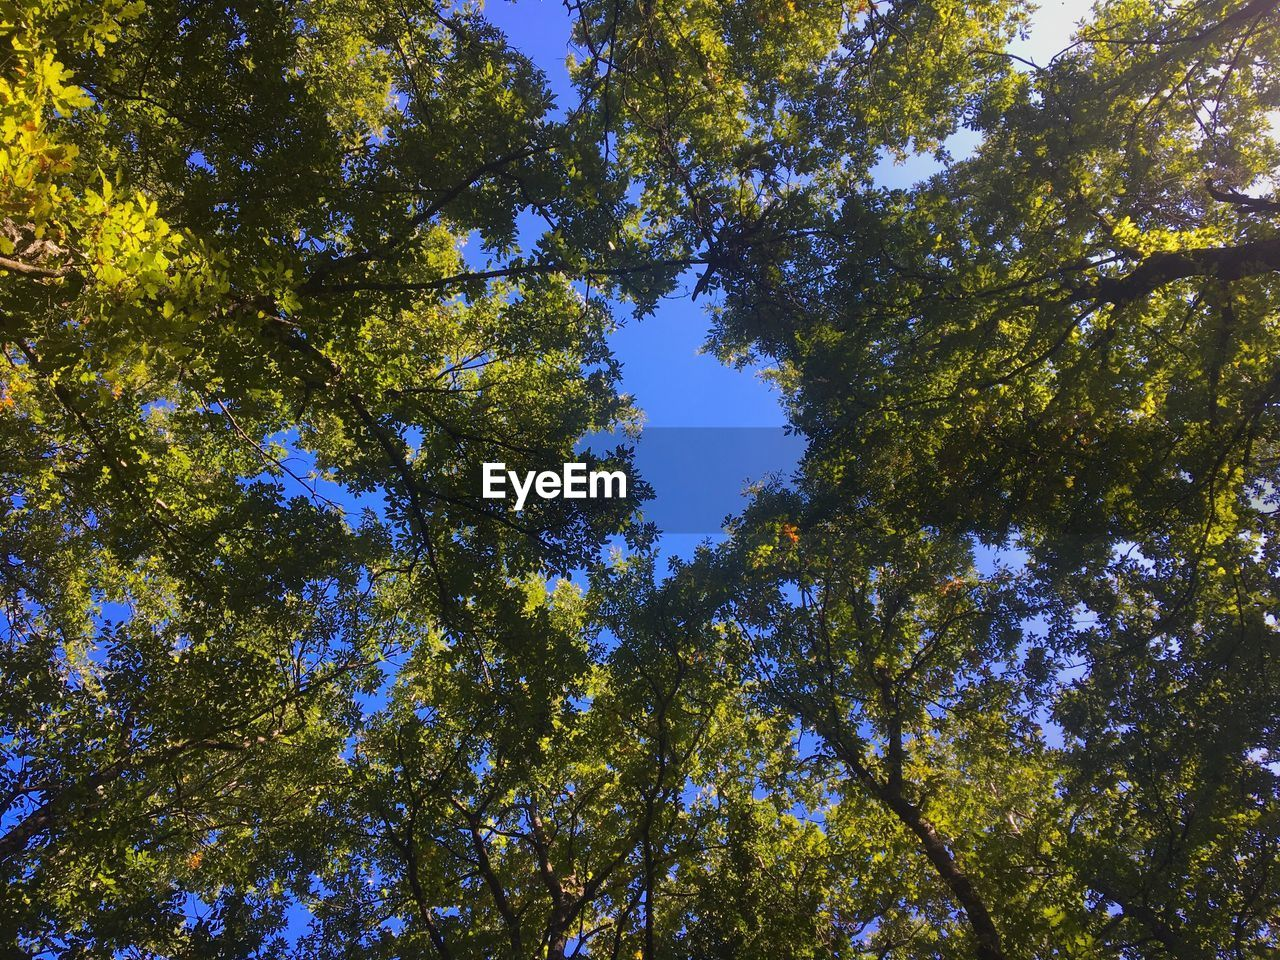 tree, plant, low angle view, growth, beauty in nature, nature, no people, tranquility, day, sky, sunlight, green color, outdoors, forest, full frame, branch, backgrounds, idyllic, tree canopy, sunny, directly below